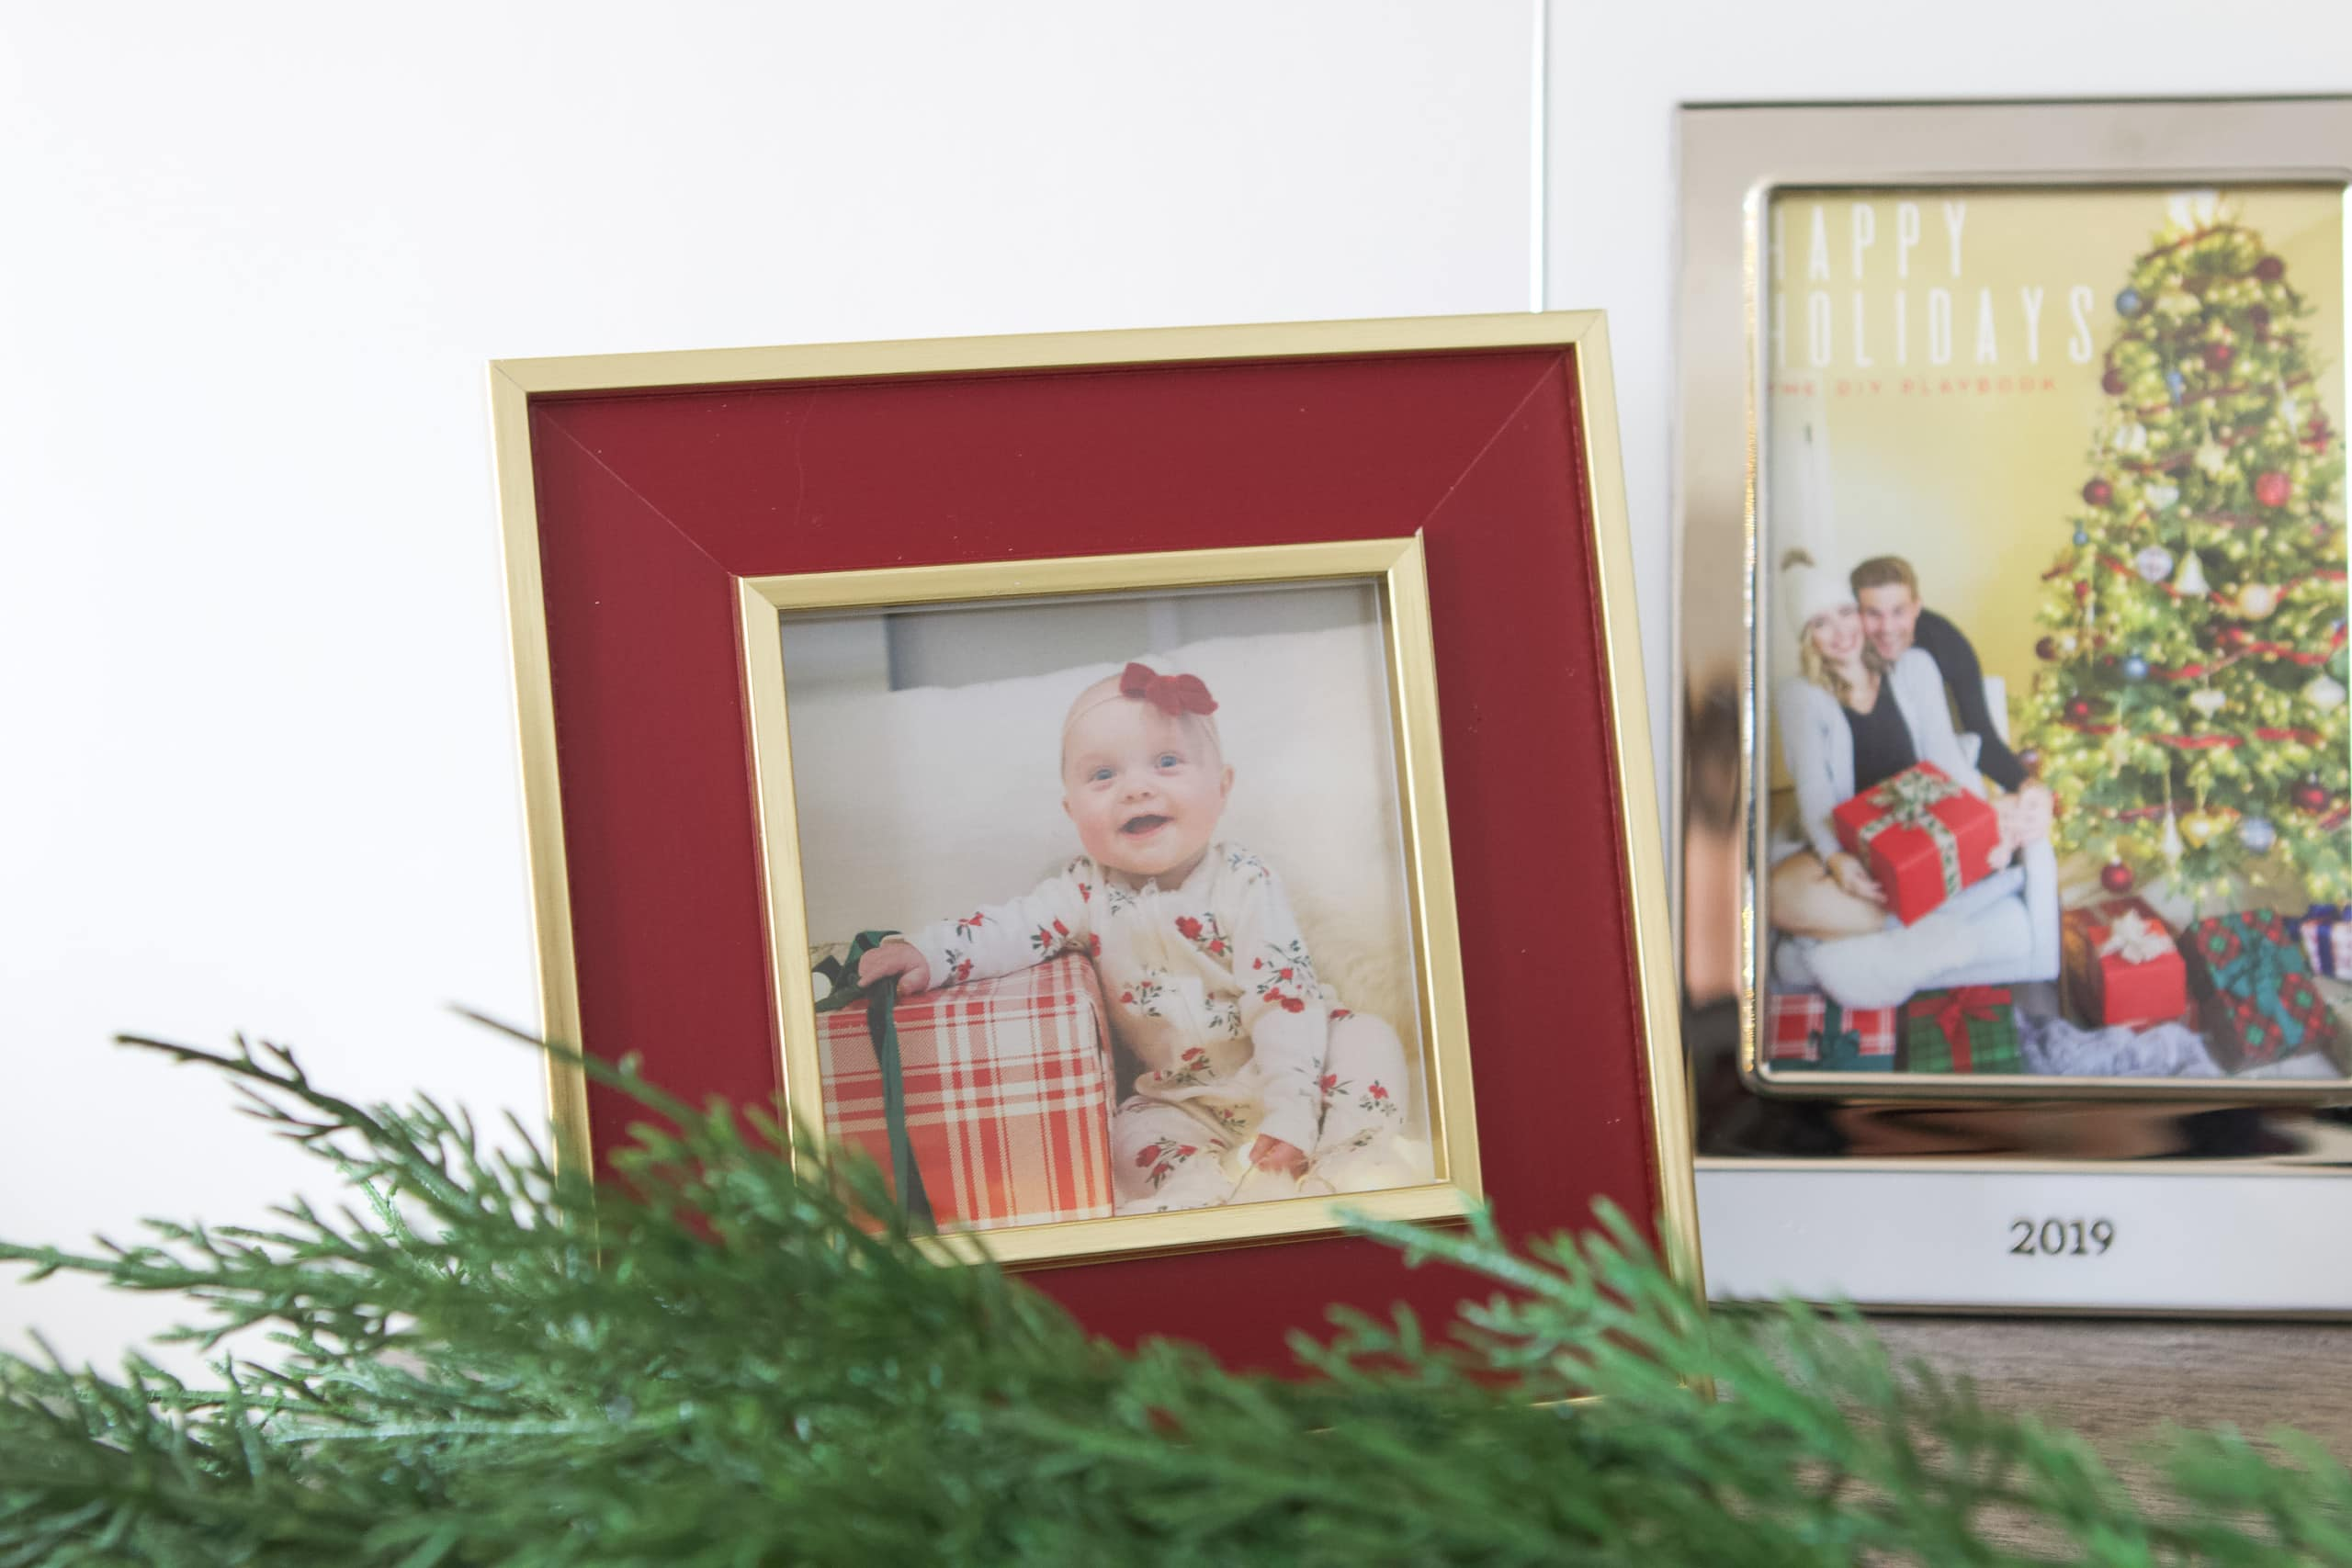 Framed pictures for each Christmas season